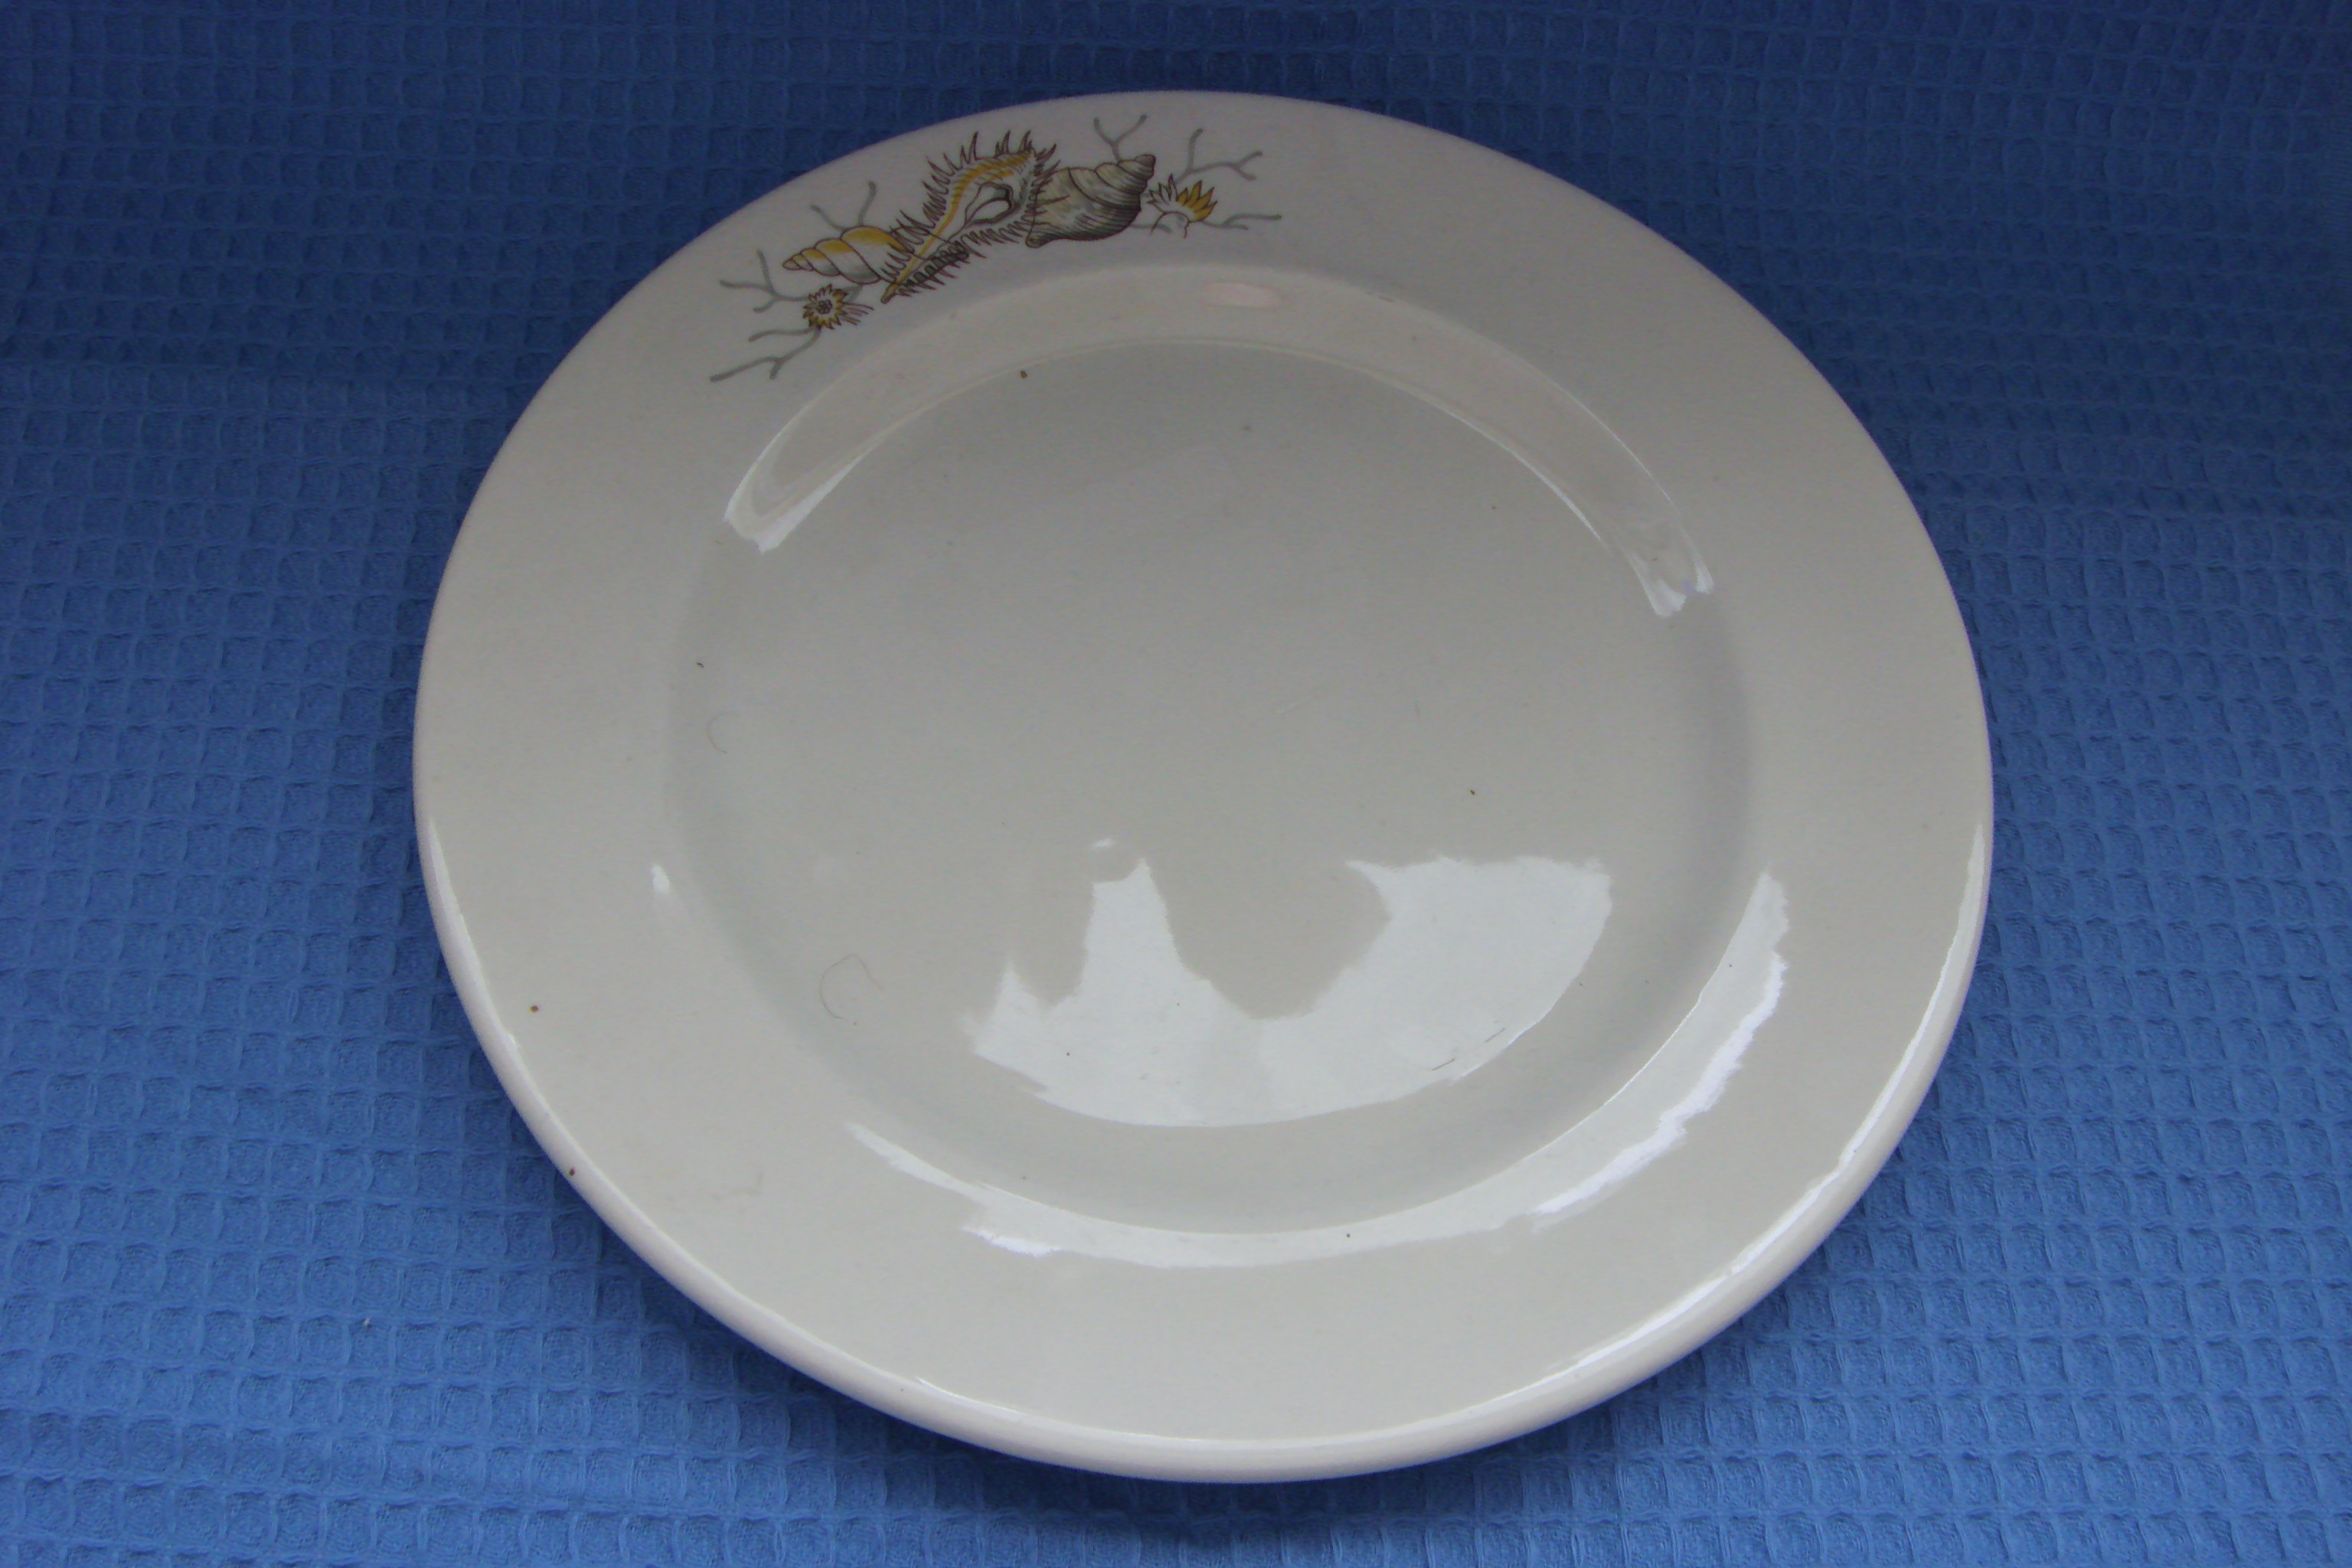 SEASHELL DESIGN MEDIUM SIZE PLATE FROM THE ORIENT LINE